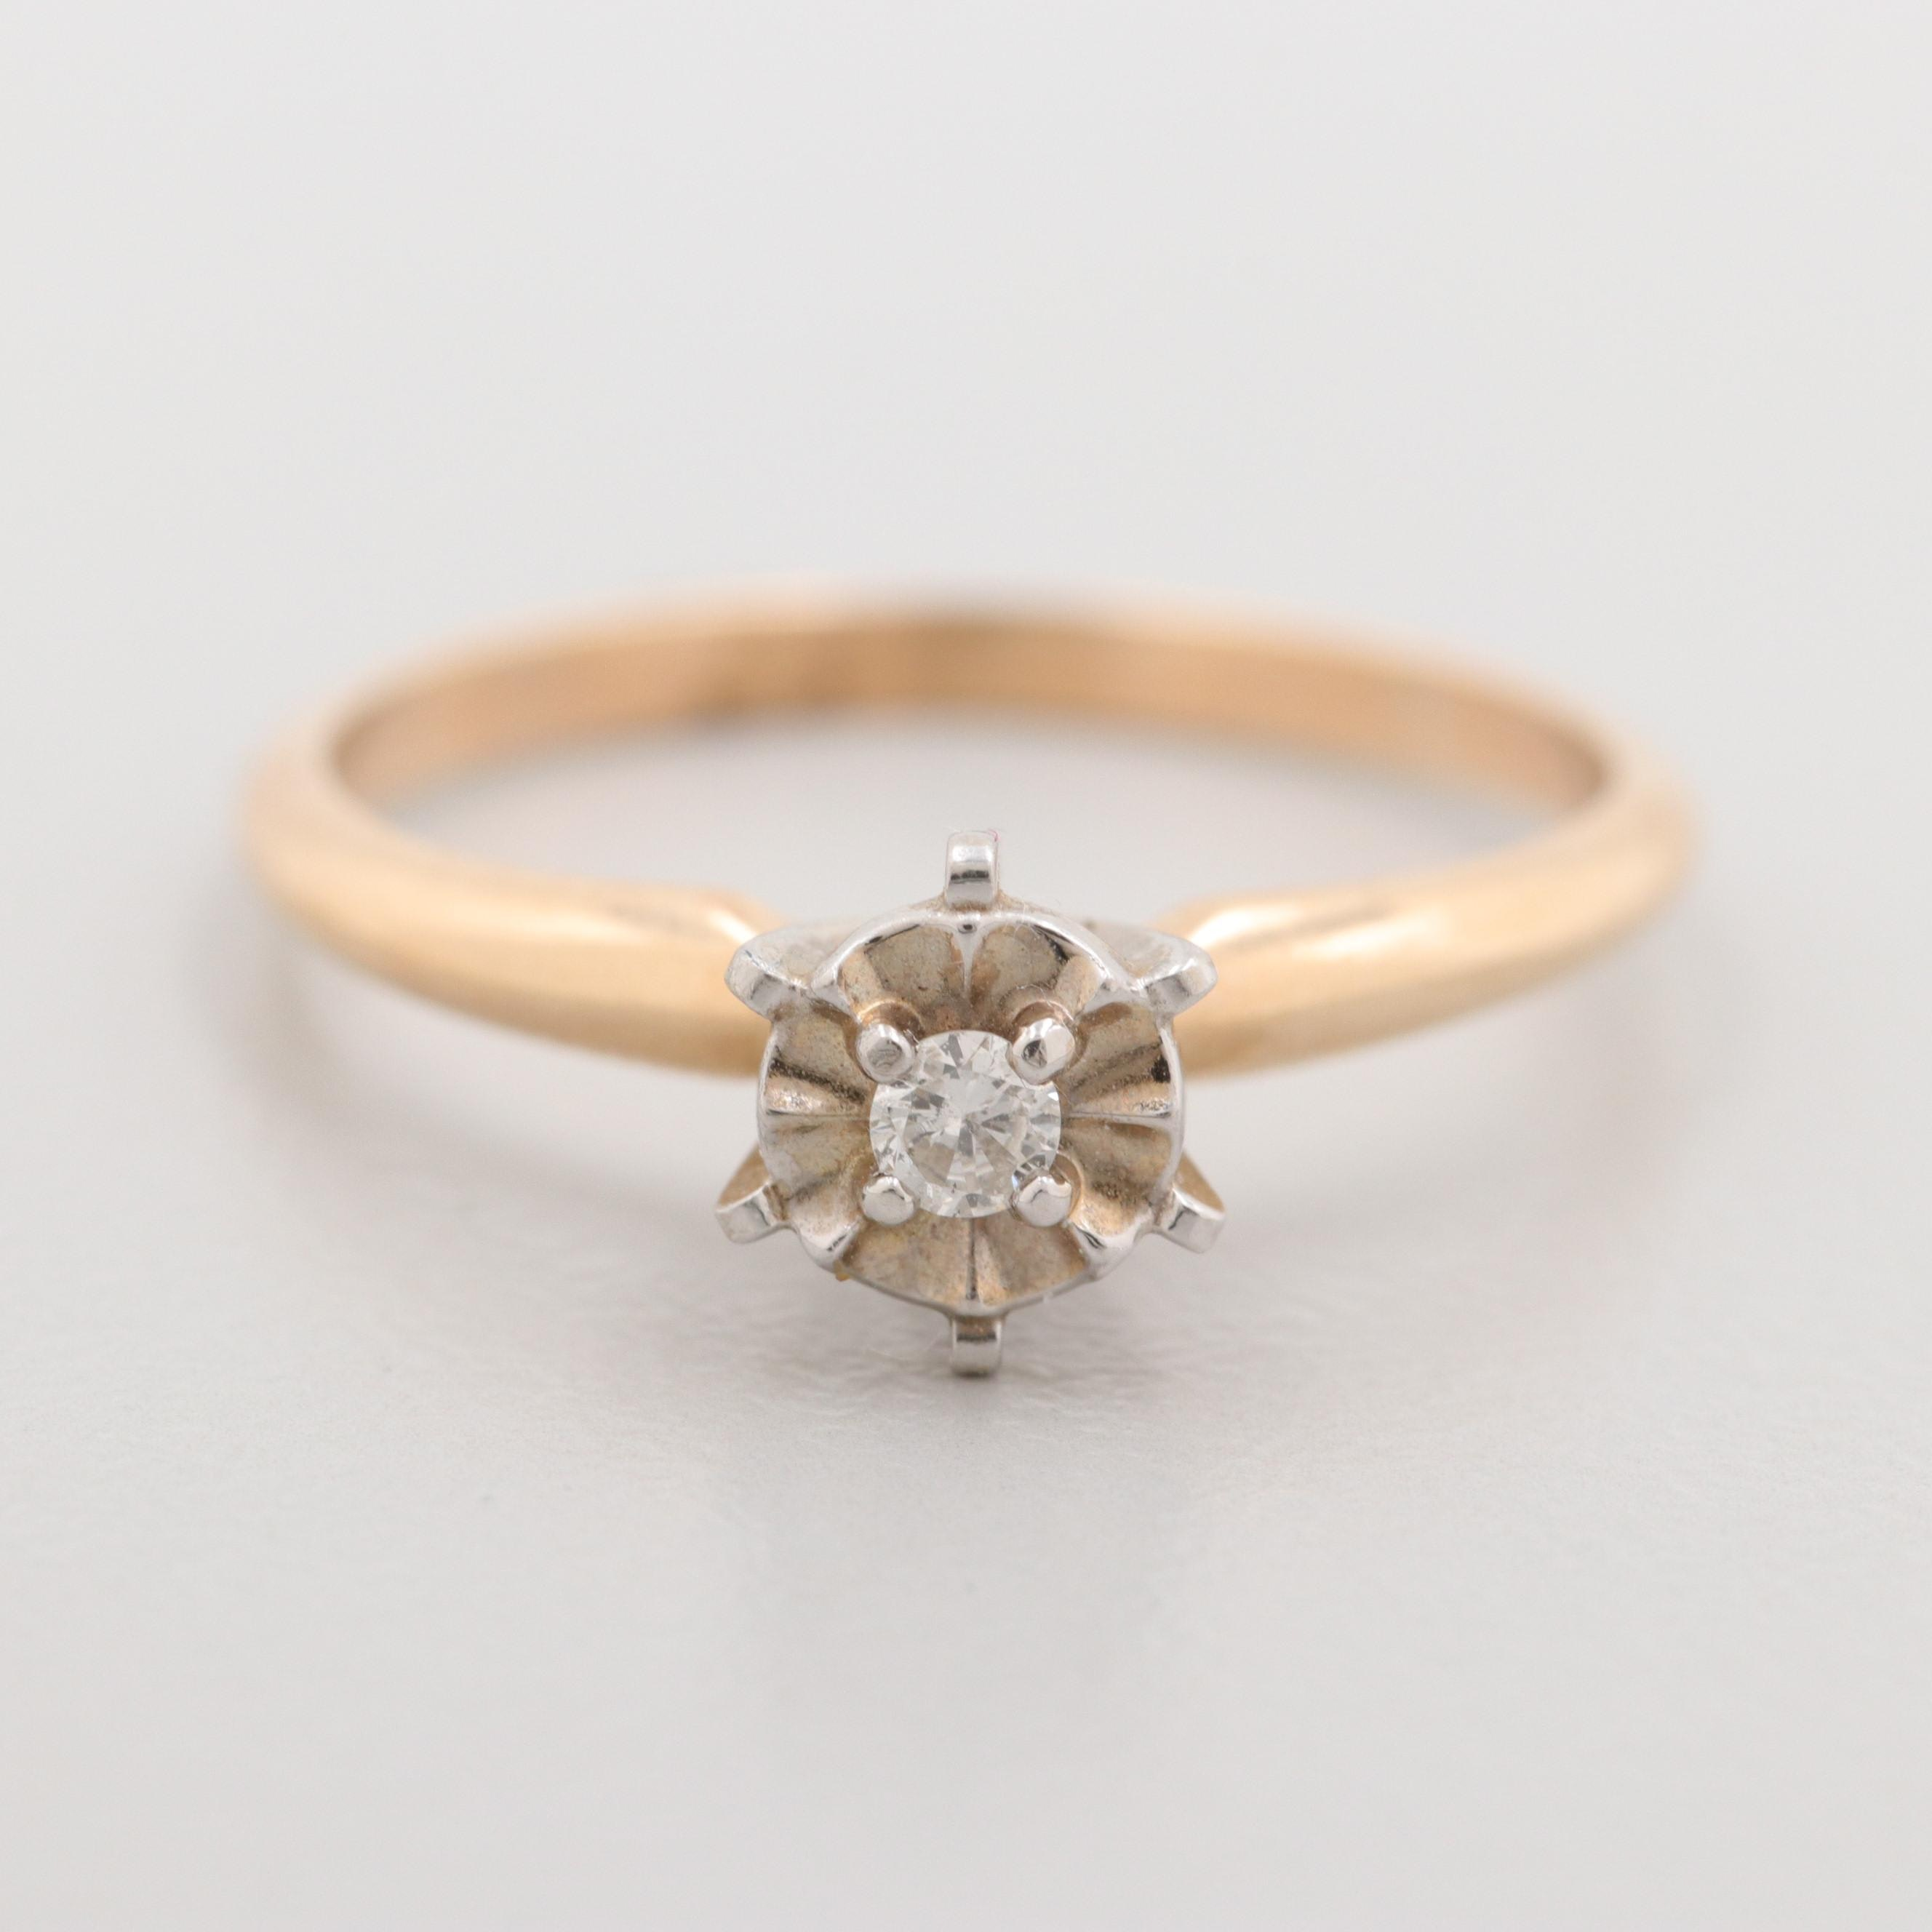 10K Yellow Gold Diamond Solitaire Ring with White Gold Accent